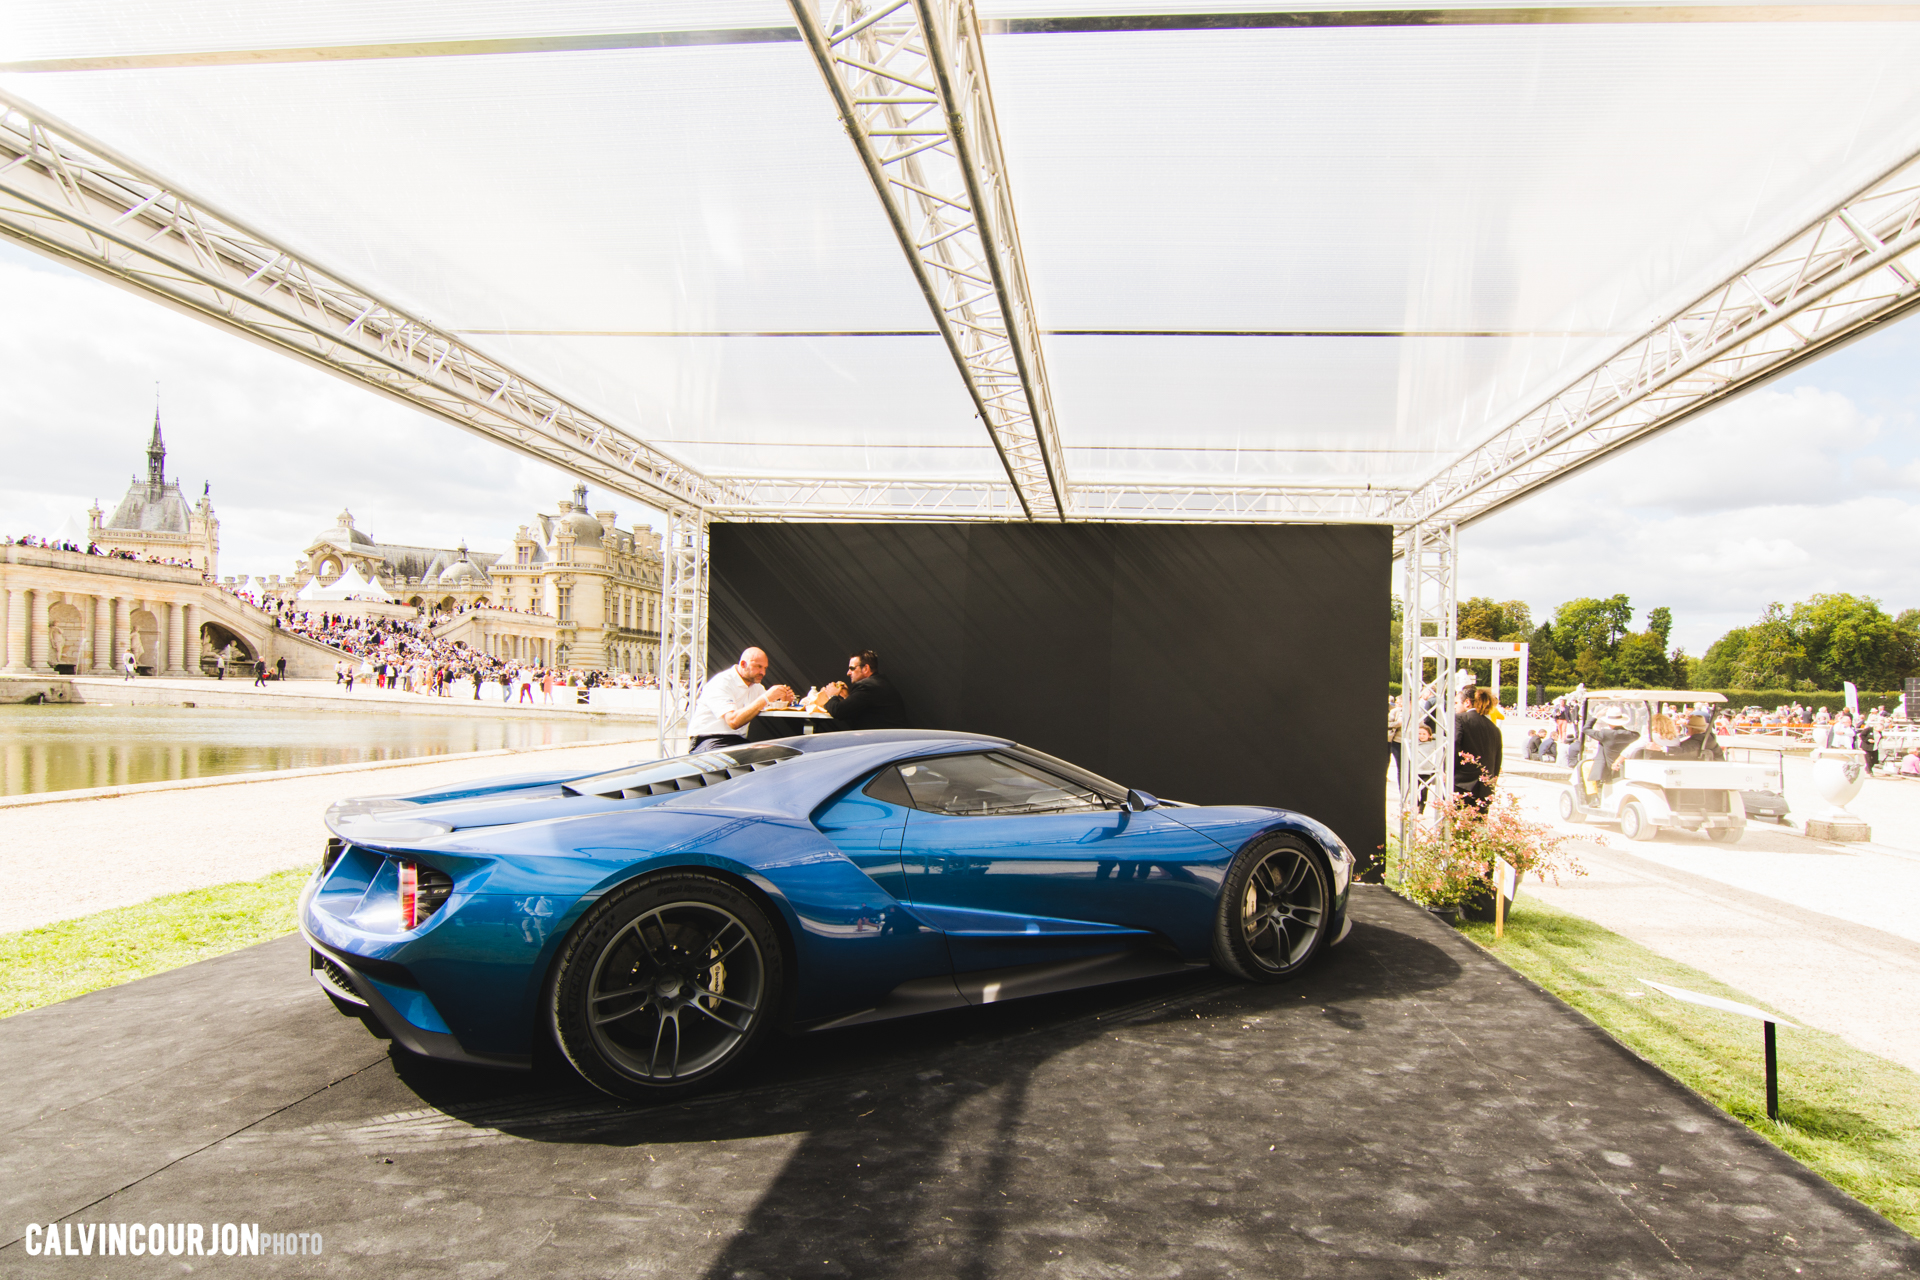 Ford GT concept-car 2015 - Chantilly 2015 – photo Calvin Courjon